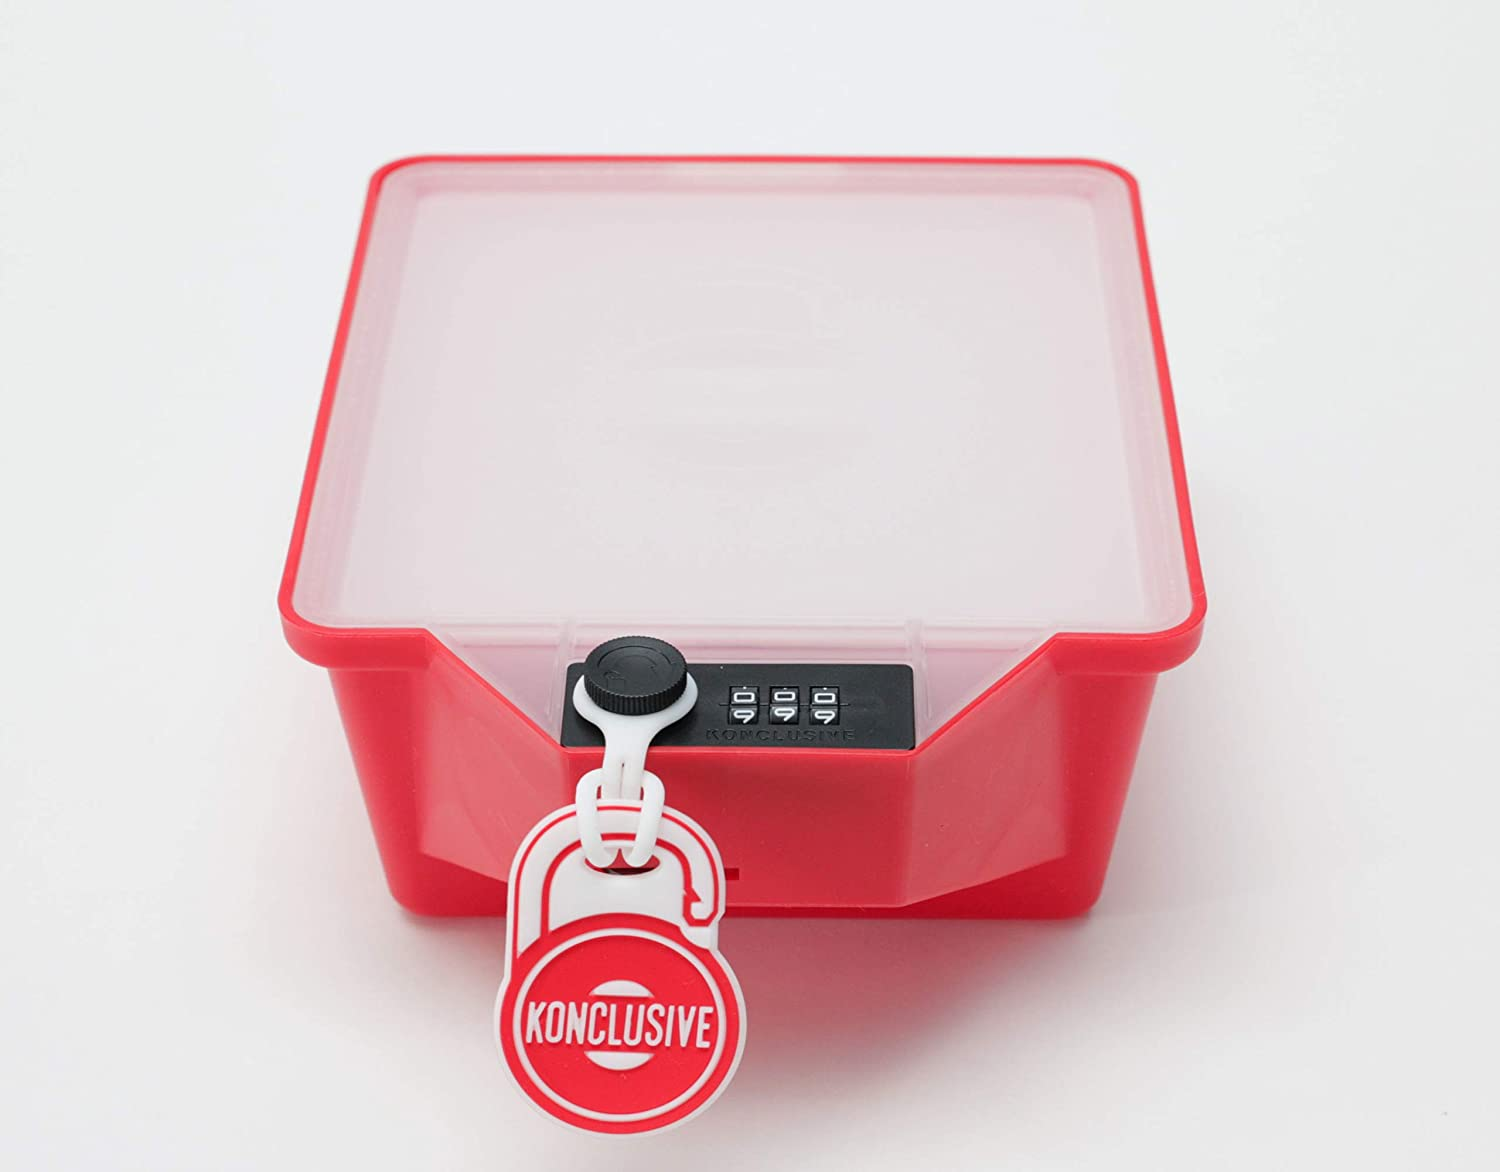 Konclusive Container | Lunchbox With A Lock | Container With A Lock | Protect Your Food At Work & Home | Anti - Theft & Tampering | Made In The USA | Strawberry Red